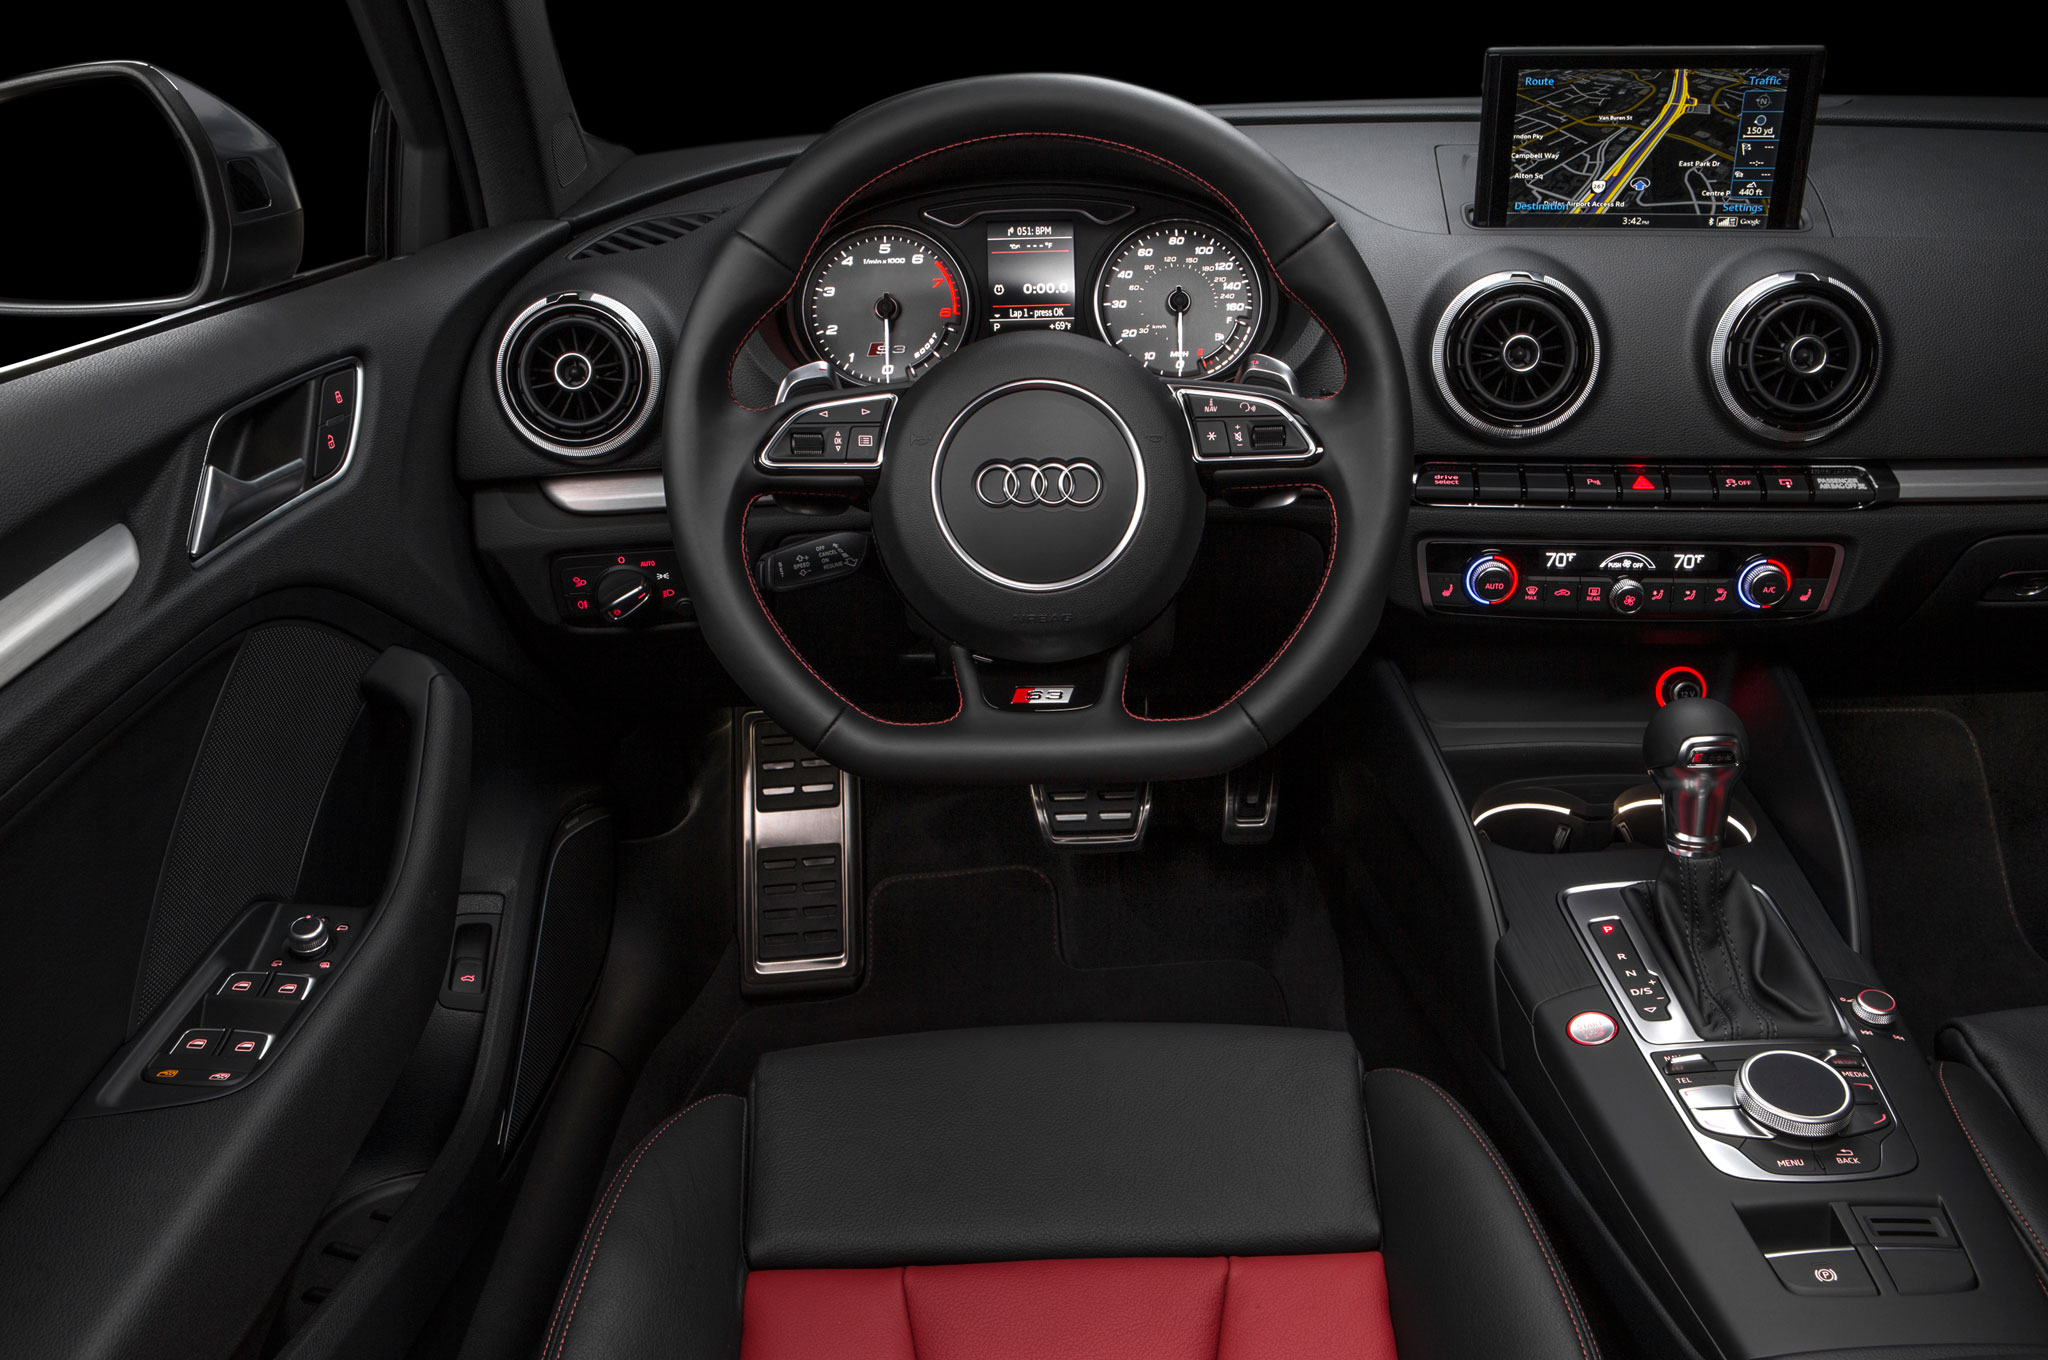 2015 audi s3 sedan limited edition cockpit interior 1209 cars performance reviews and test. Black Bedroom Furniture Sets. Home Design Ideas